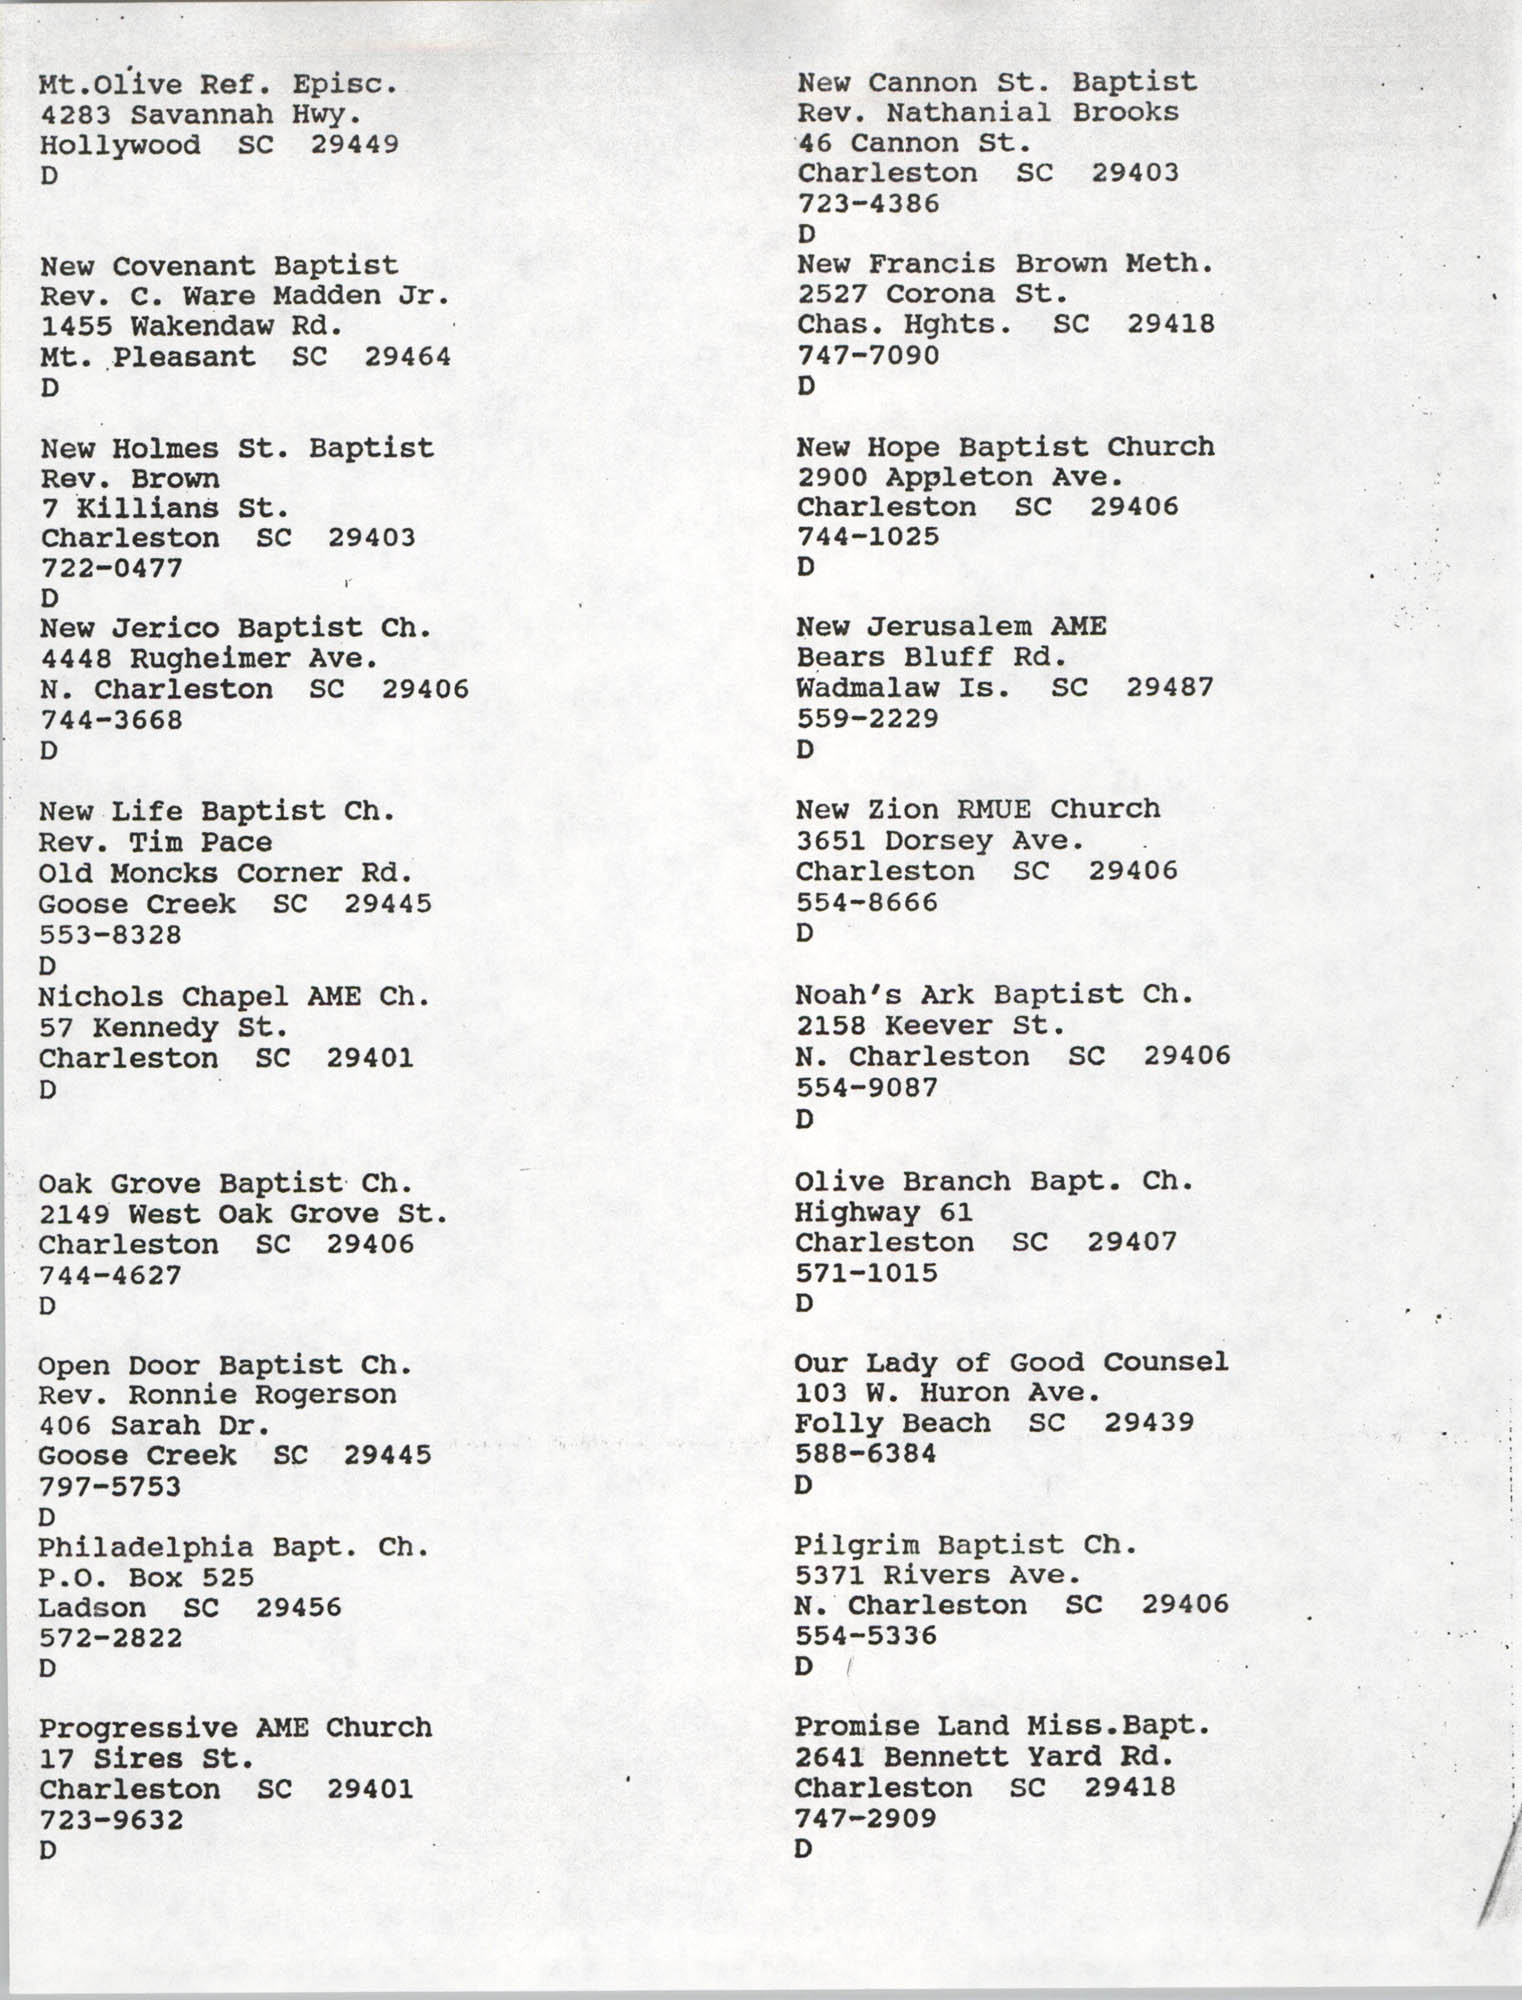 Church Contact List, Charleston Chapter of the NAACP, Page 22